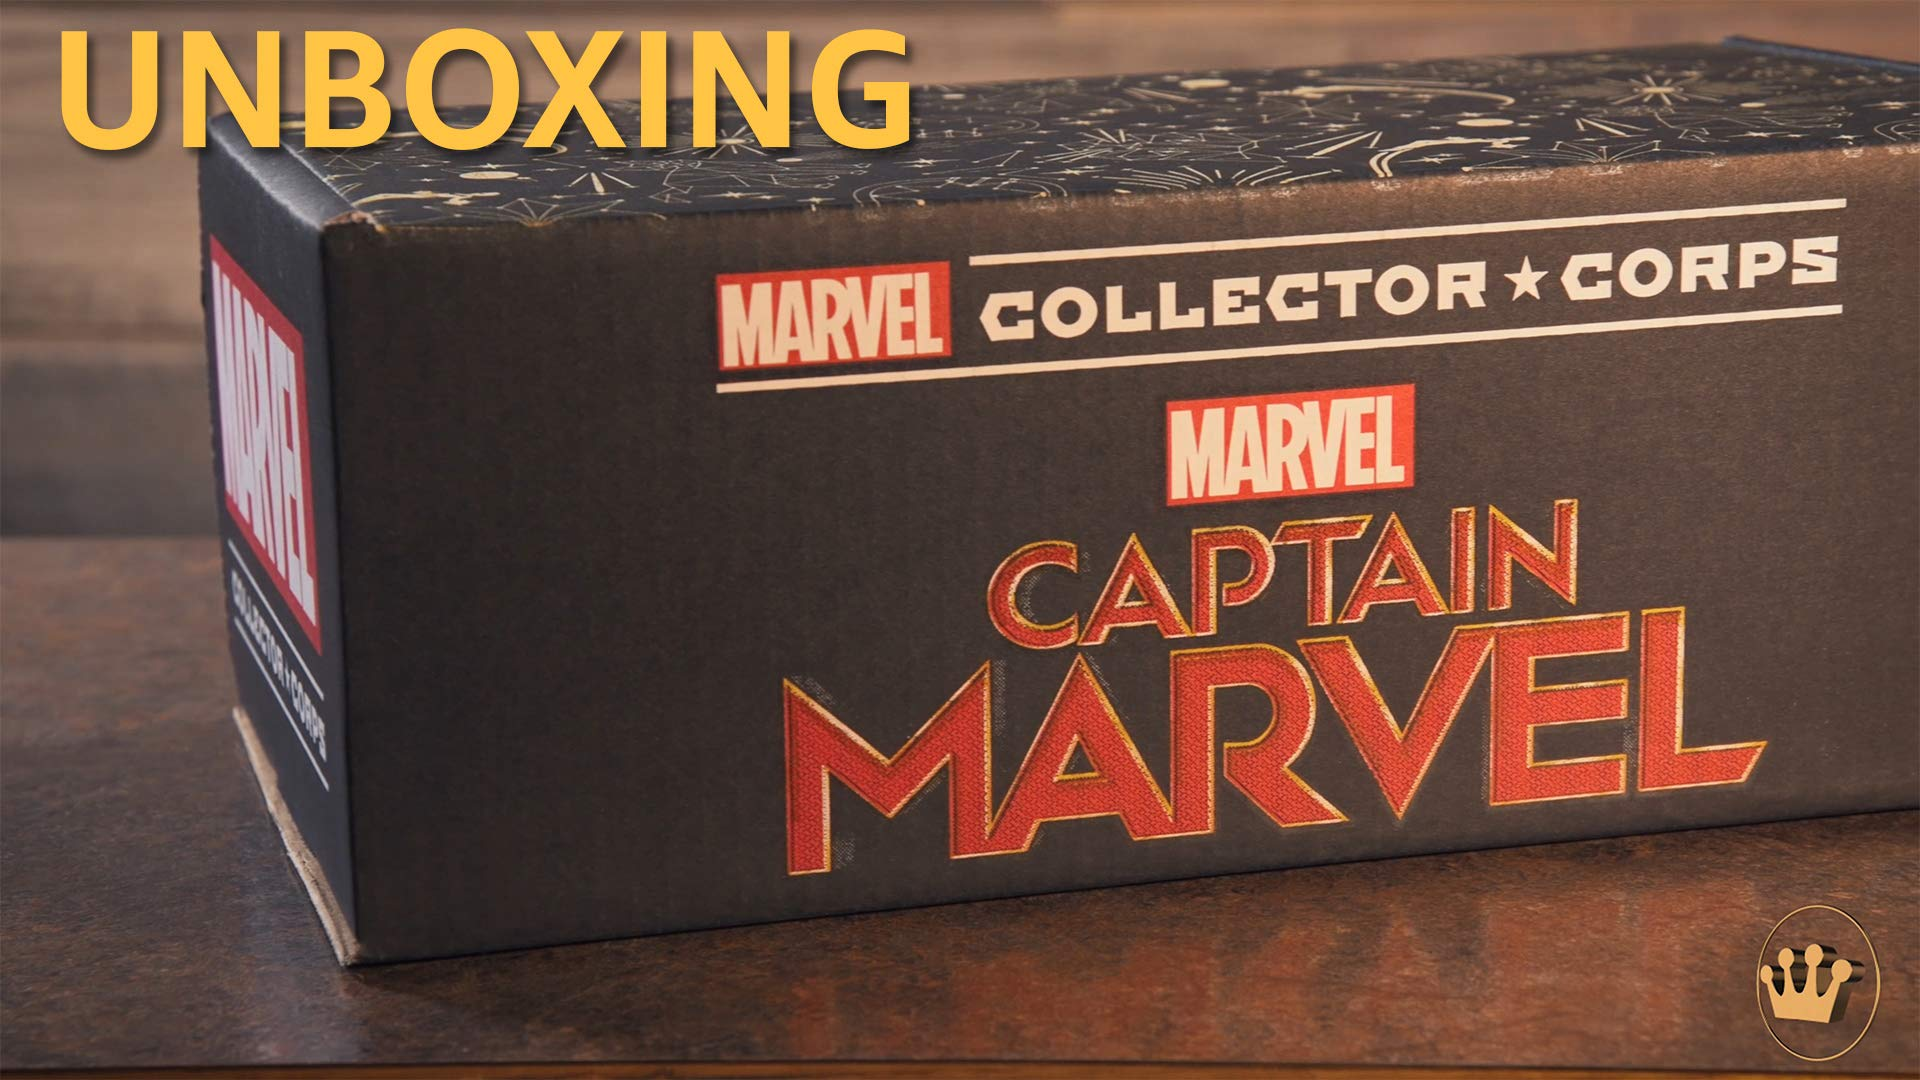 Unboxing of 2019 March's theme: Captain Marvel